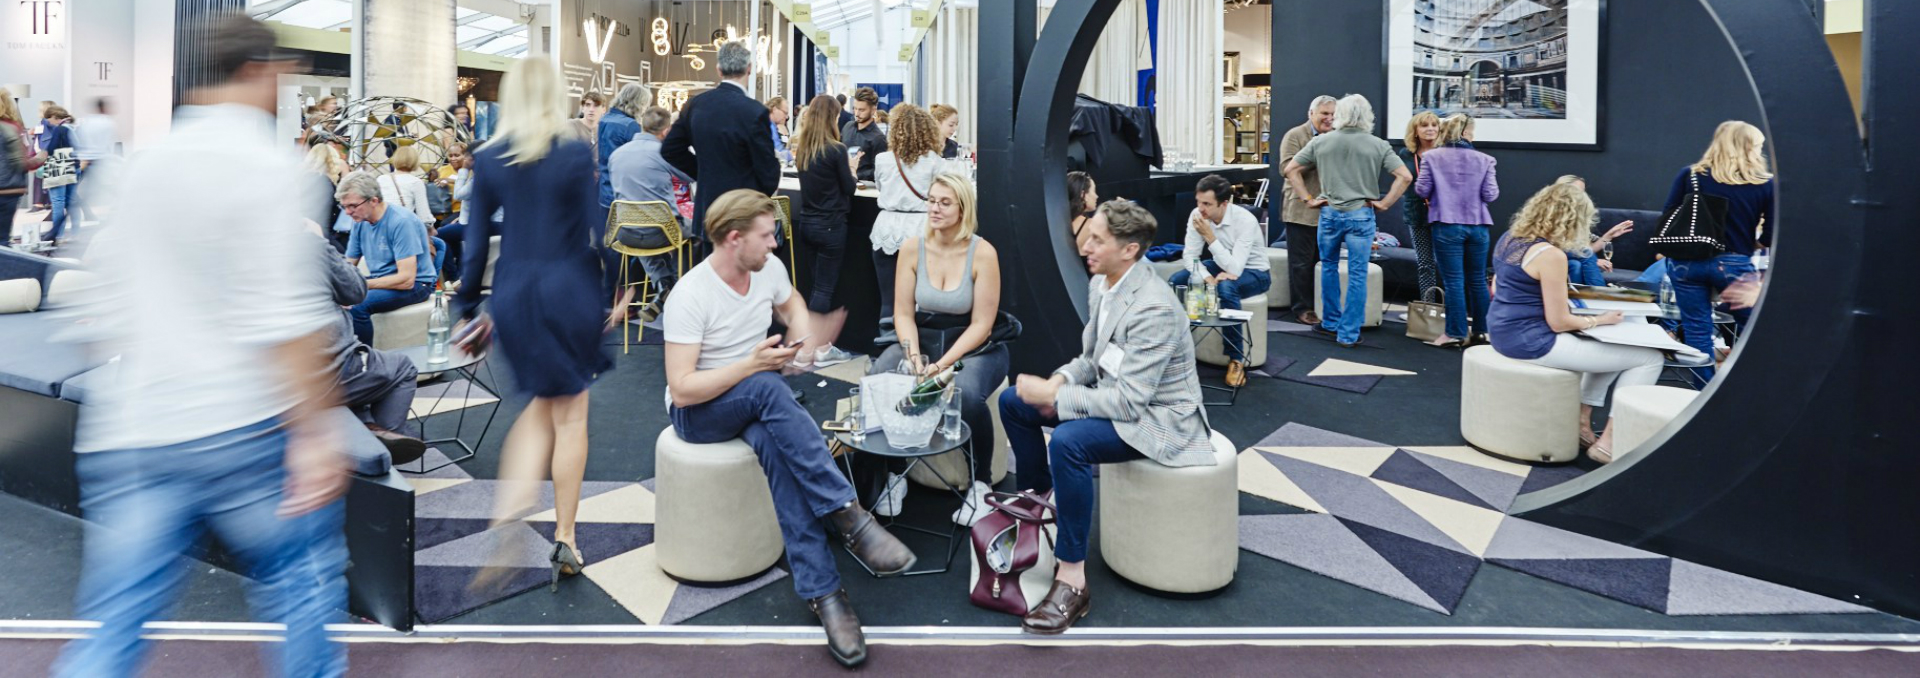 Discover Best BIID Mentoring Sessions During This Decorex 2017 - Decorex International 2017 ➤ Discover the season's newest design news and inspiration ideas. Visit Daily Design News and subscribe our newsletter! #dailydesignnews #designnews #bestdesignevets #designevents #DecorexInternational2017 #Decorex2017 #DecorexInternational #Decorex